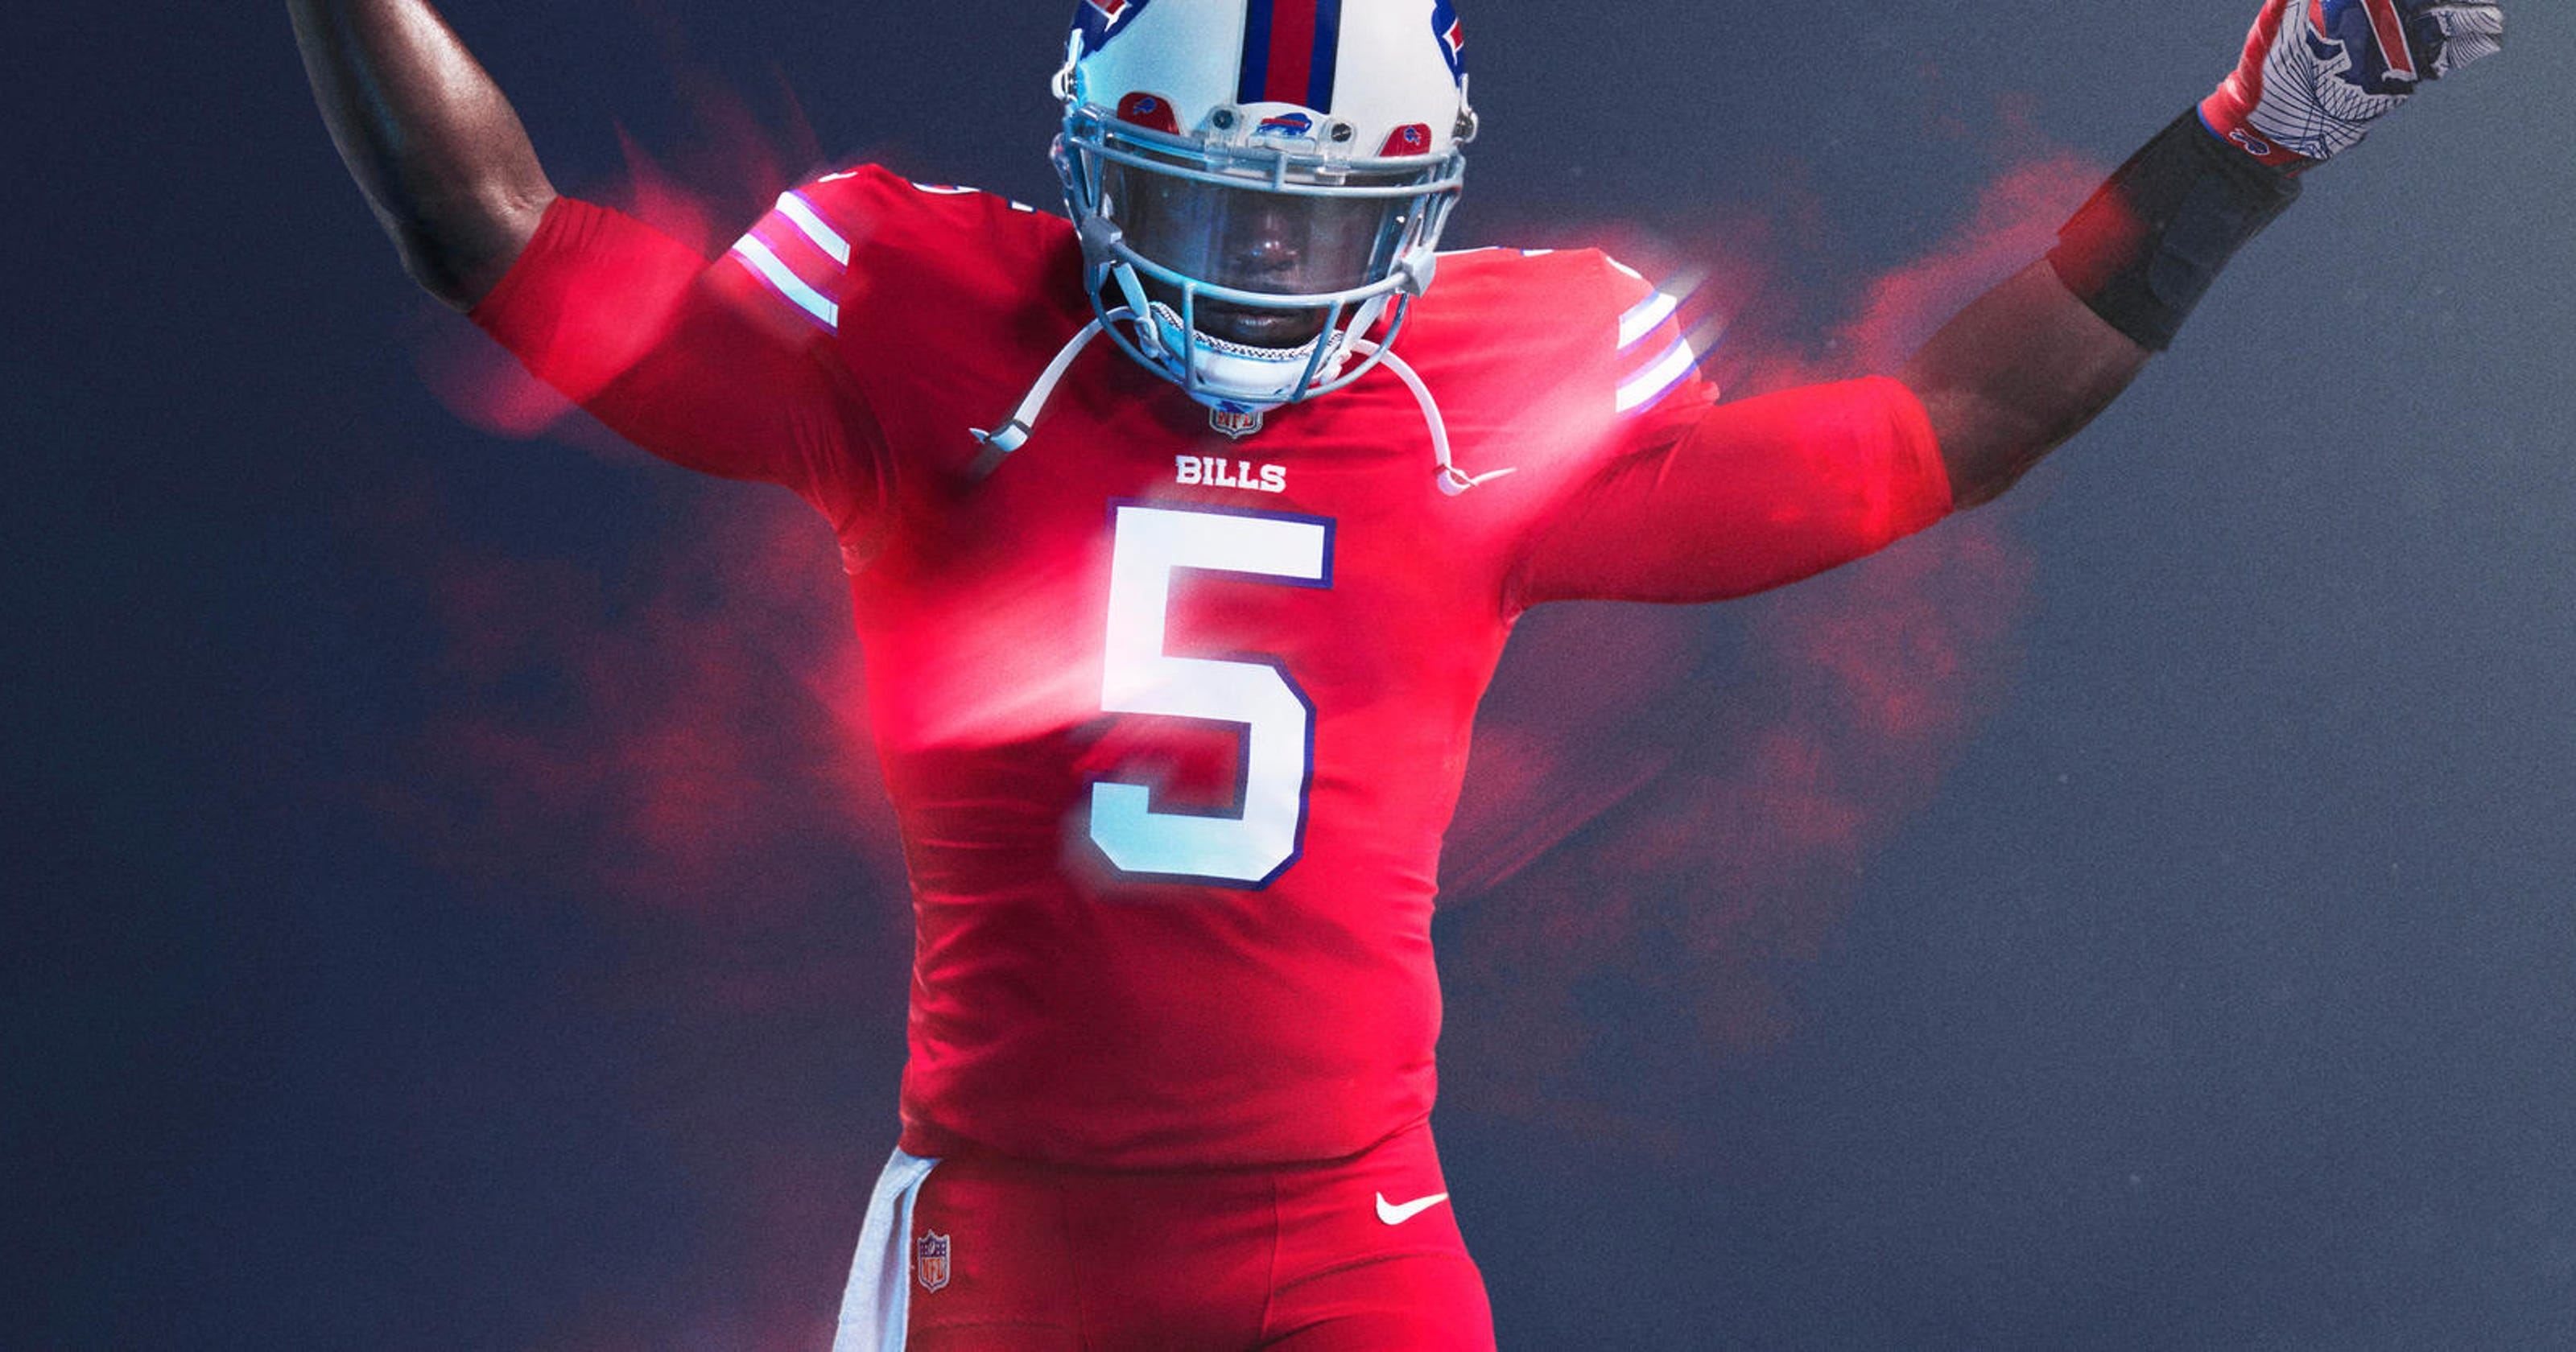 bfd0530b4d1 NFL takes Color Rush uniforms to next level